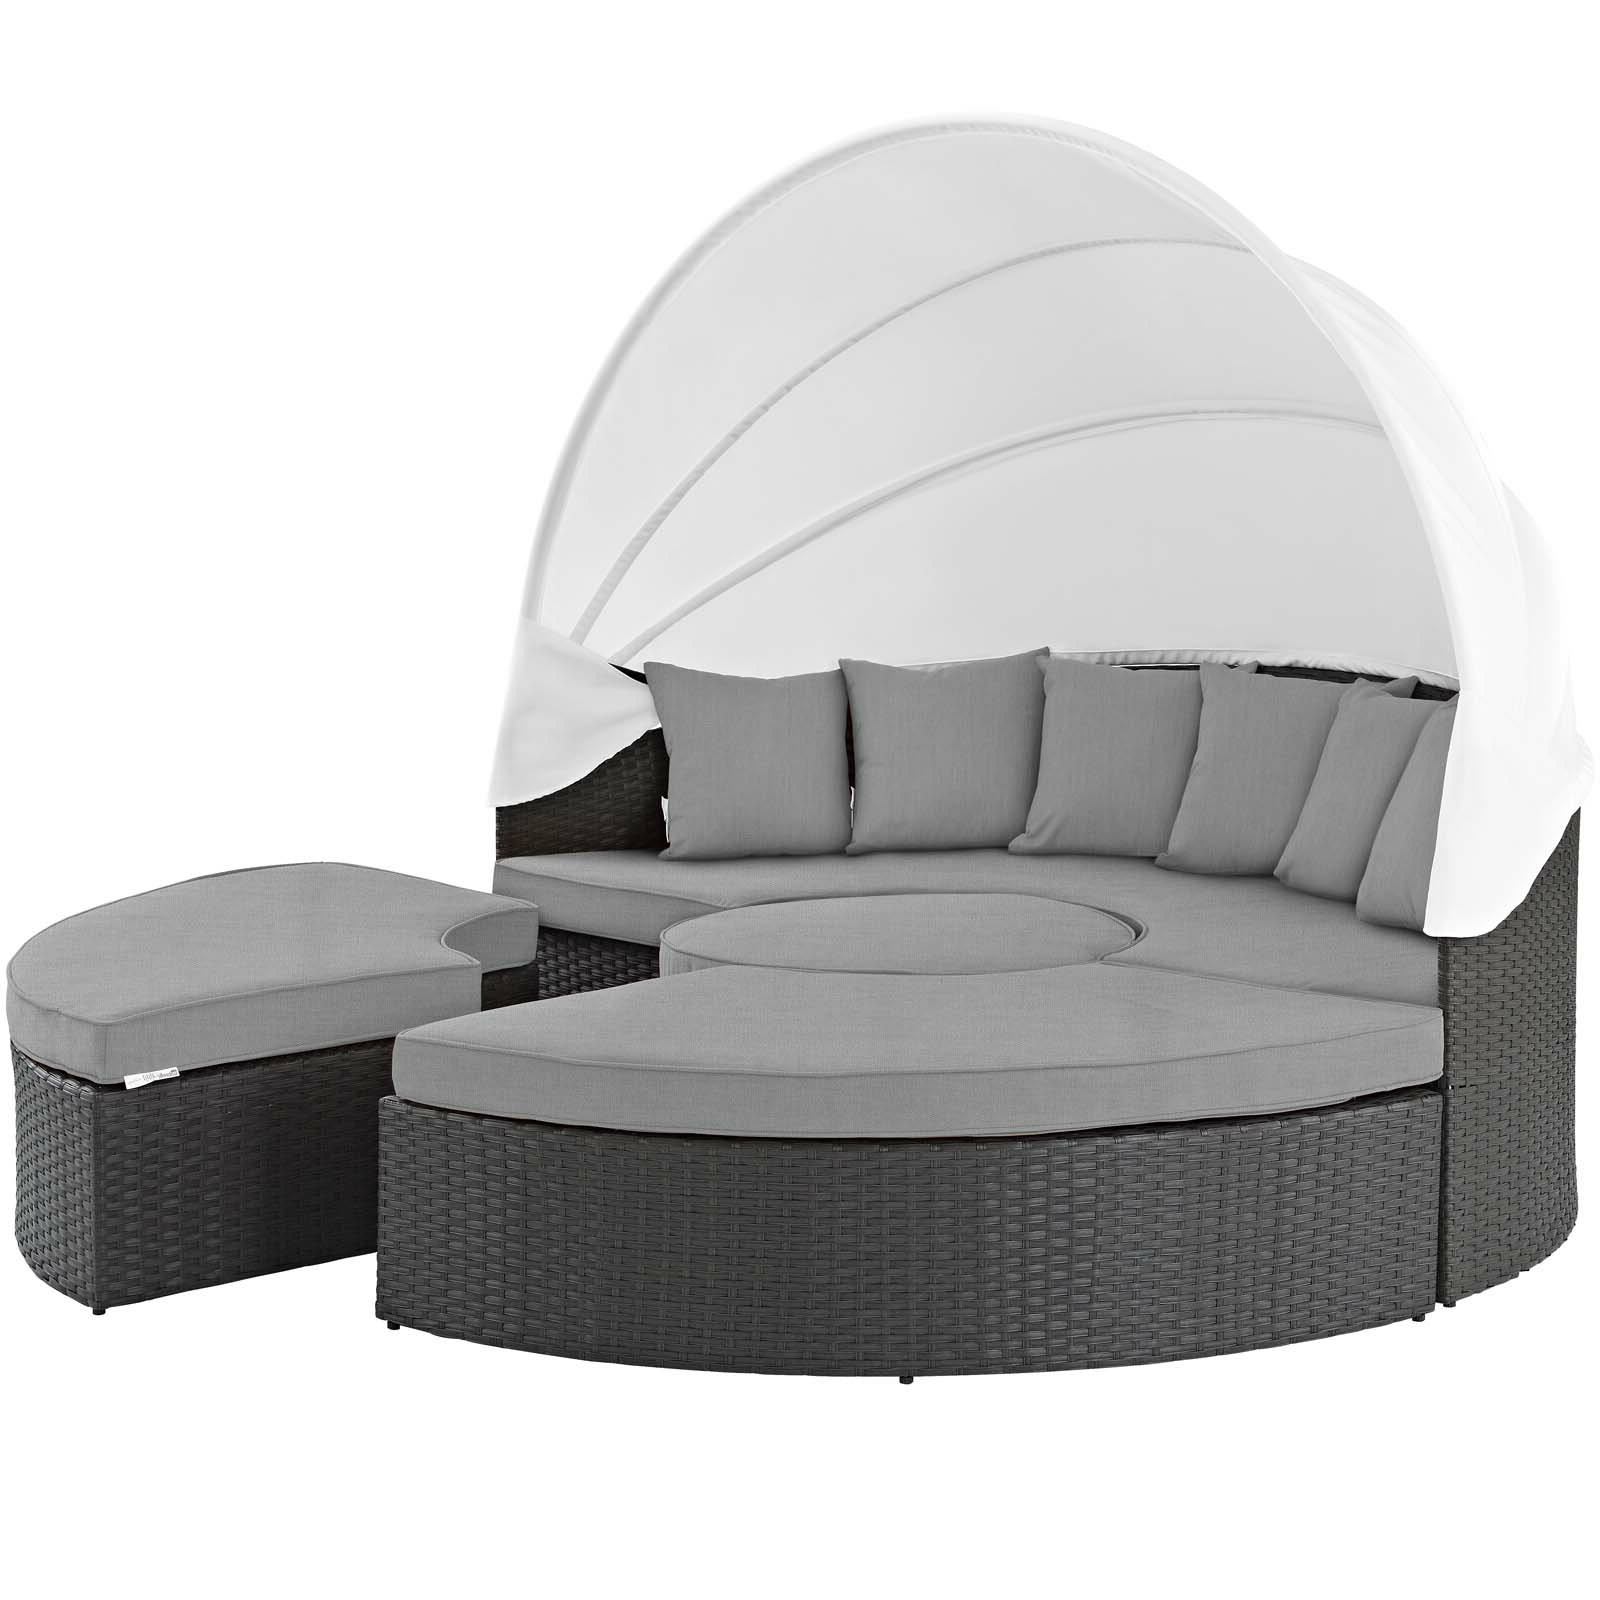 Most Recently Released Bishop Daybed Within Carrasco Patio Daybeds With Cushions (View 17 of 20)